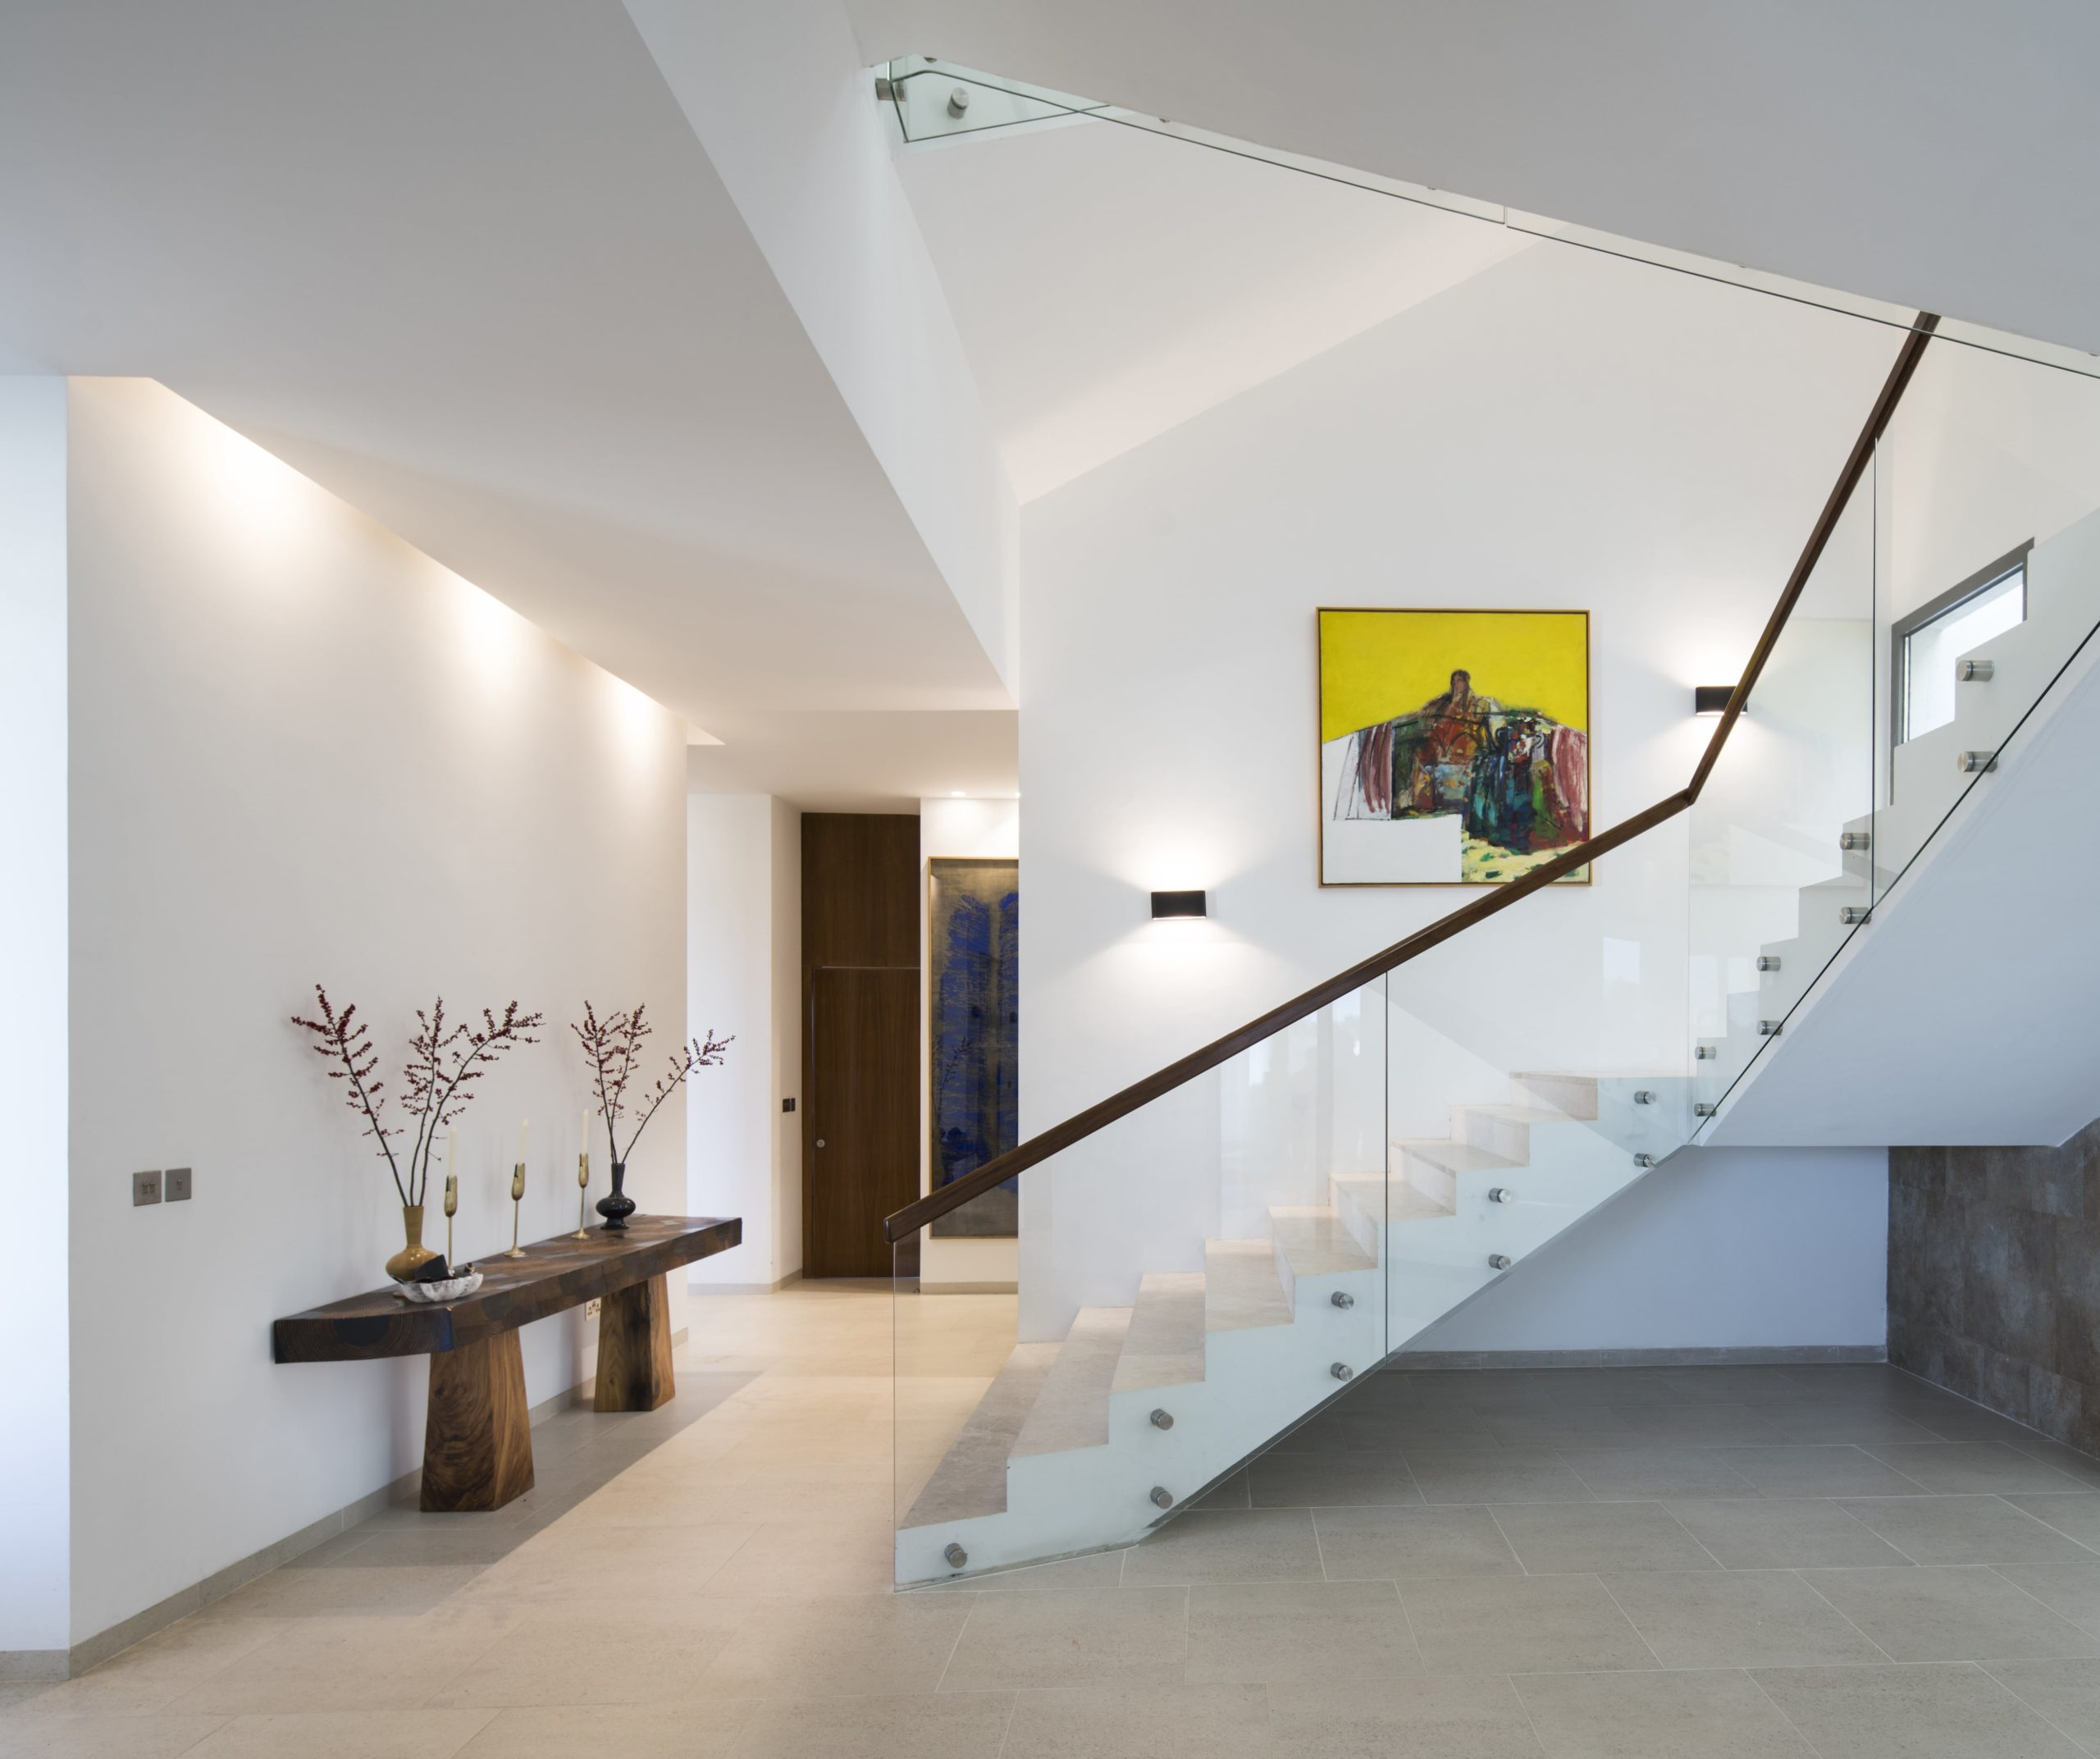 Upon entry of the house, you are welcomed by this simple foyer that has a wooden console table topped with decors and has a white staircase.